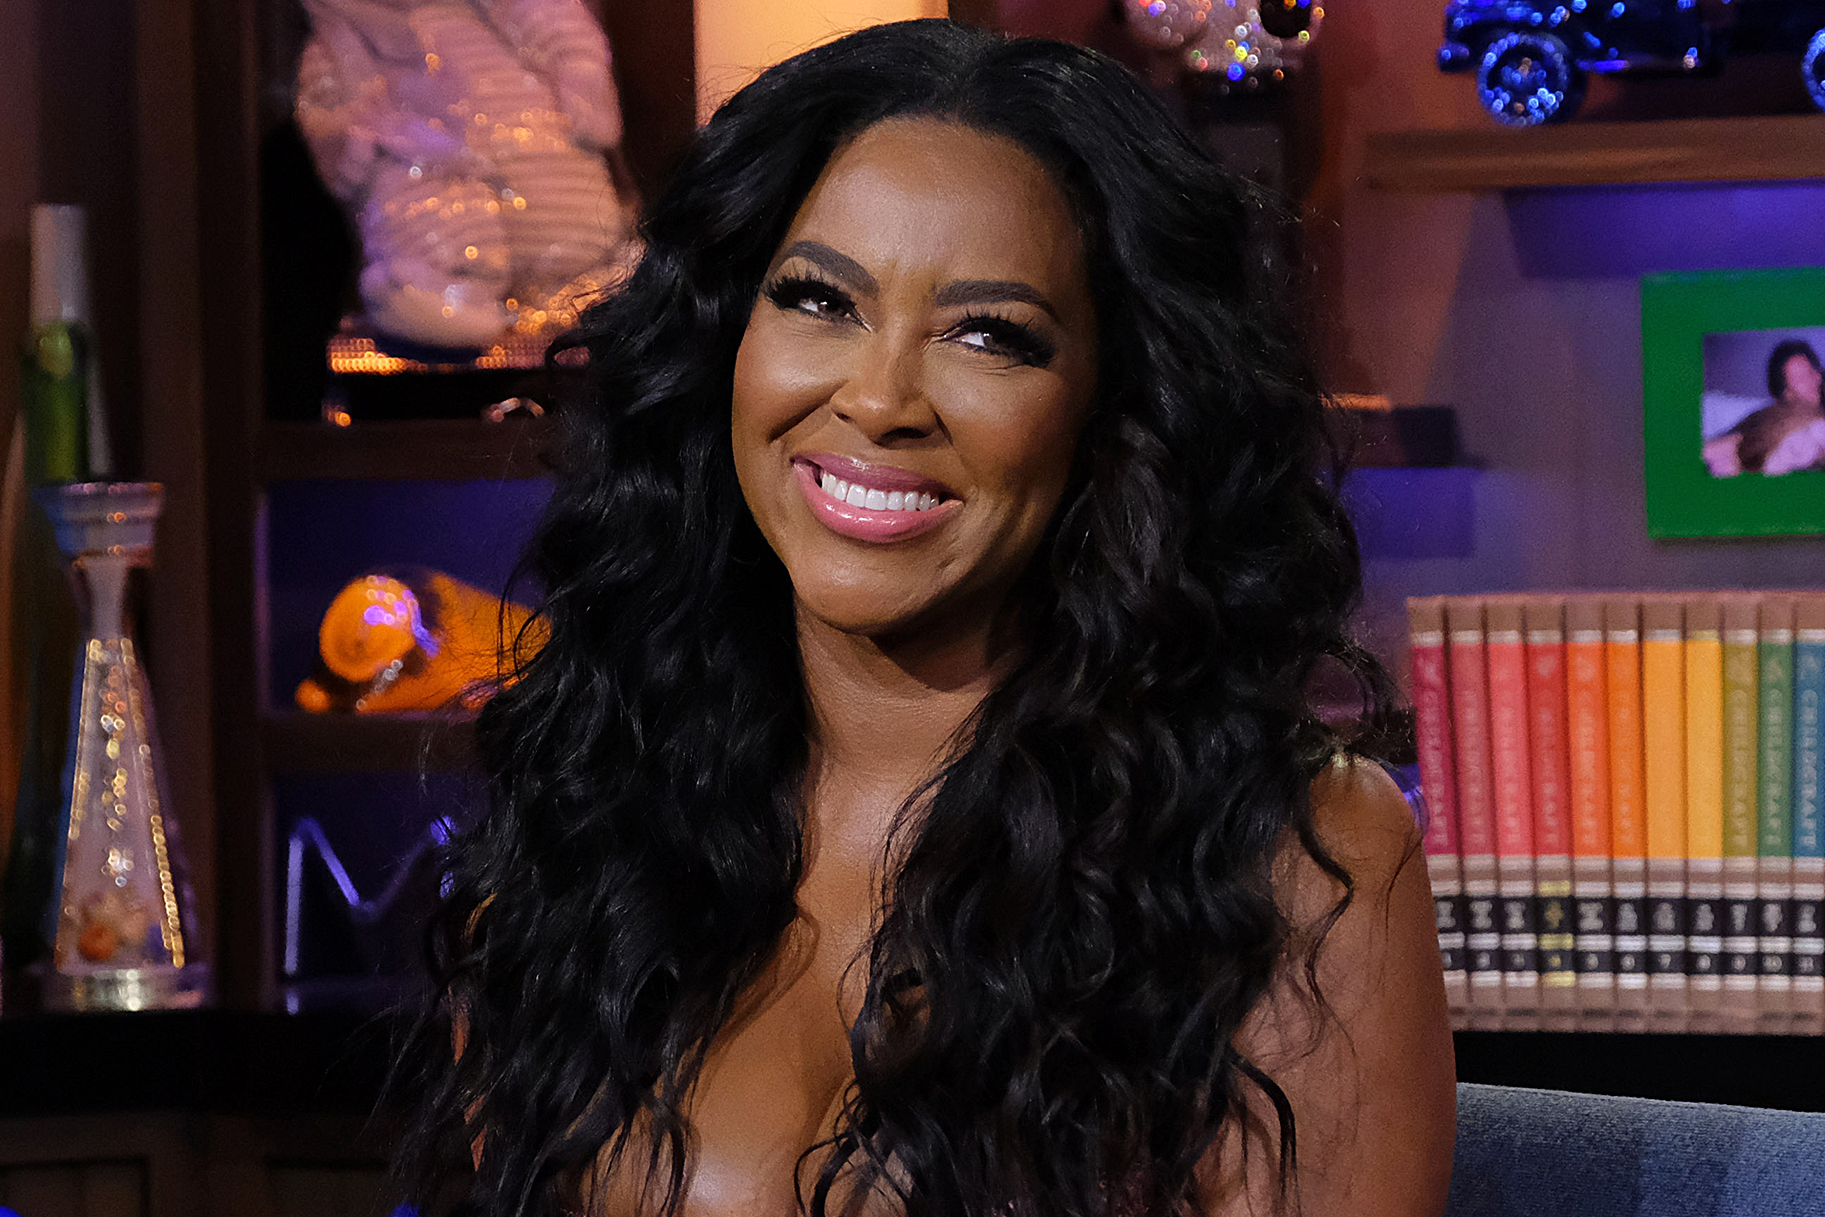 kenya-moore-talks-about-what-can-drive-out-hate-heres-the-powerful-quote-she-posted